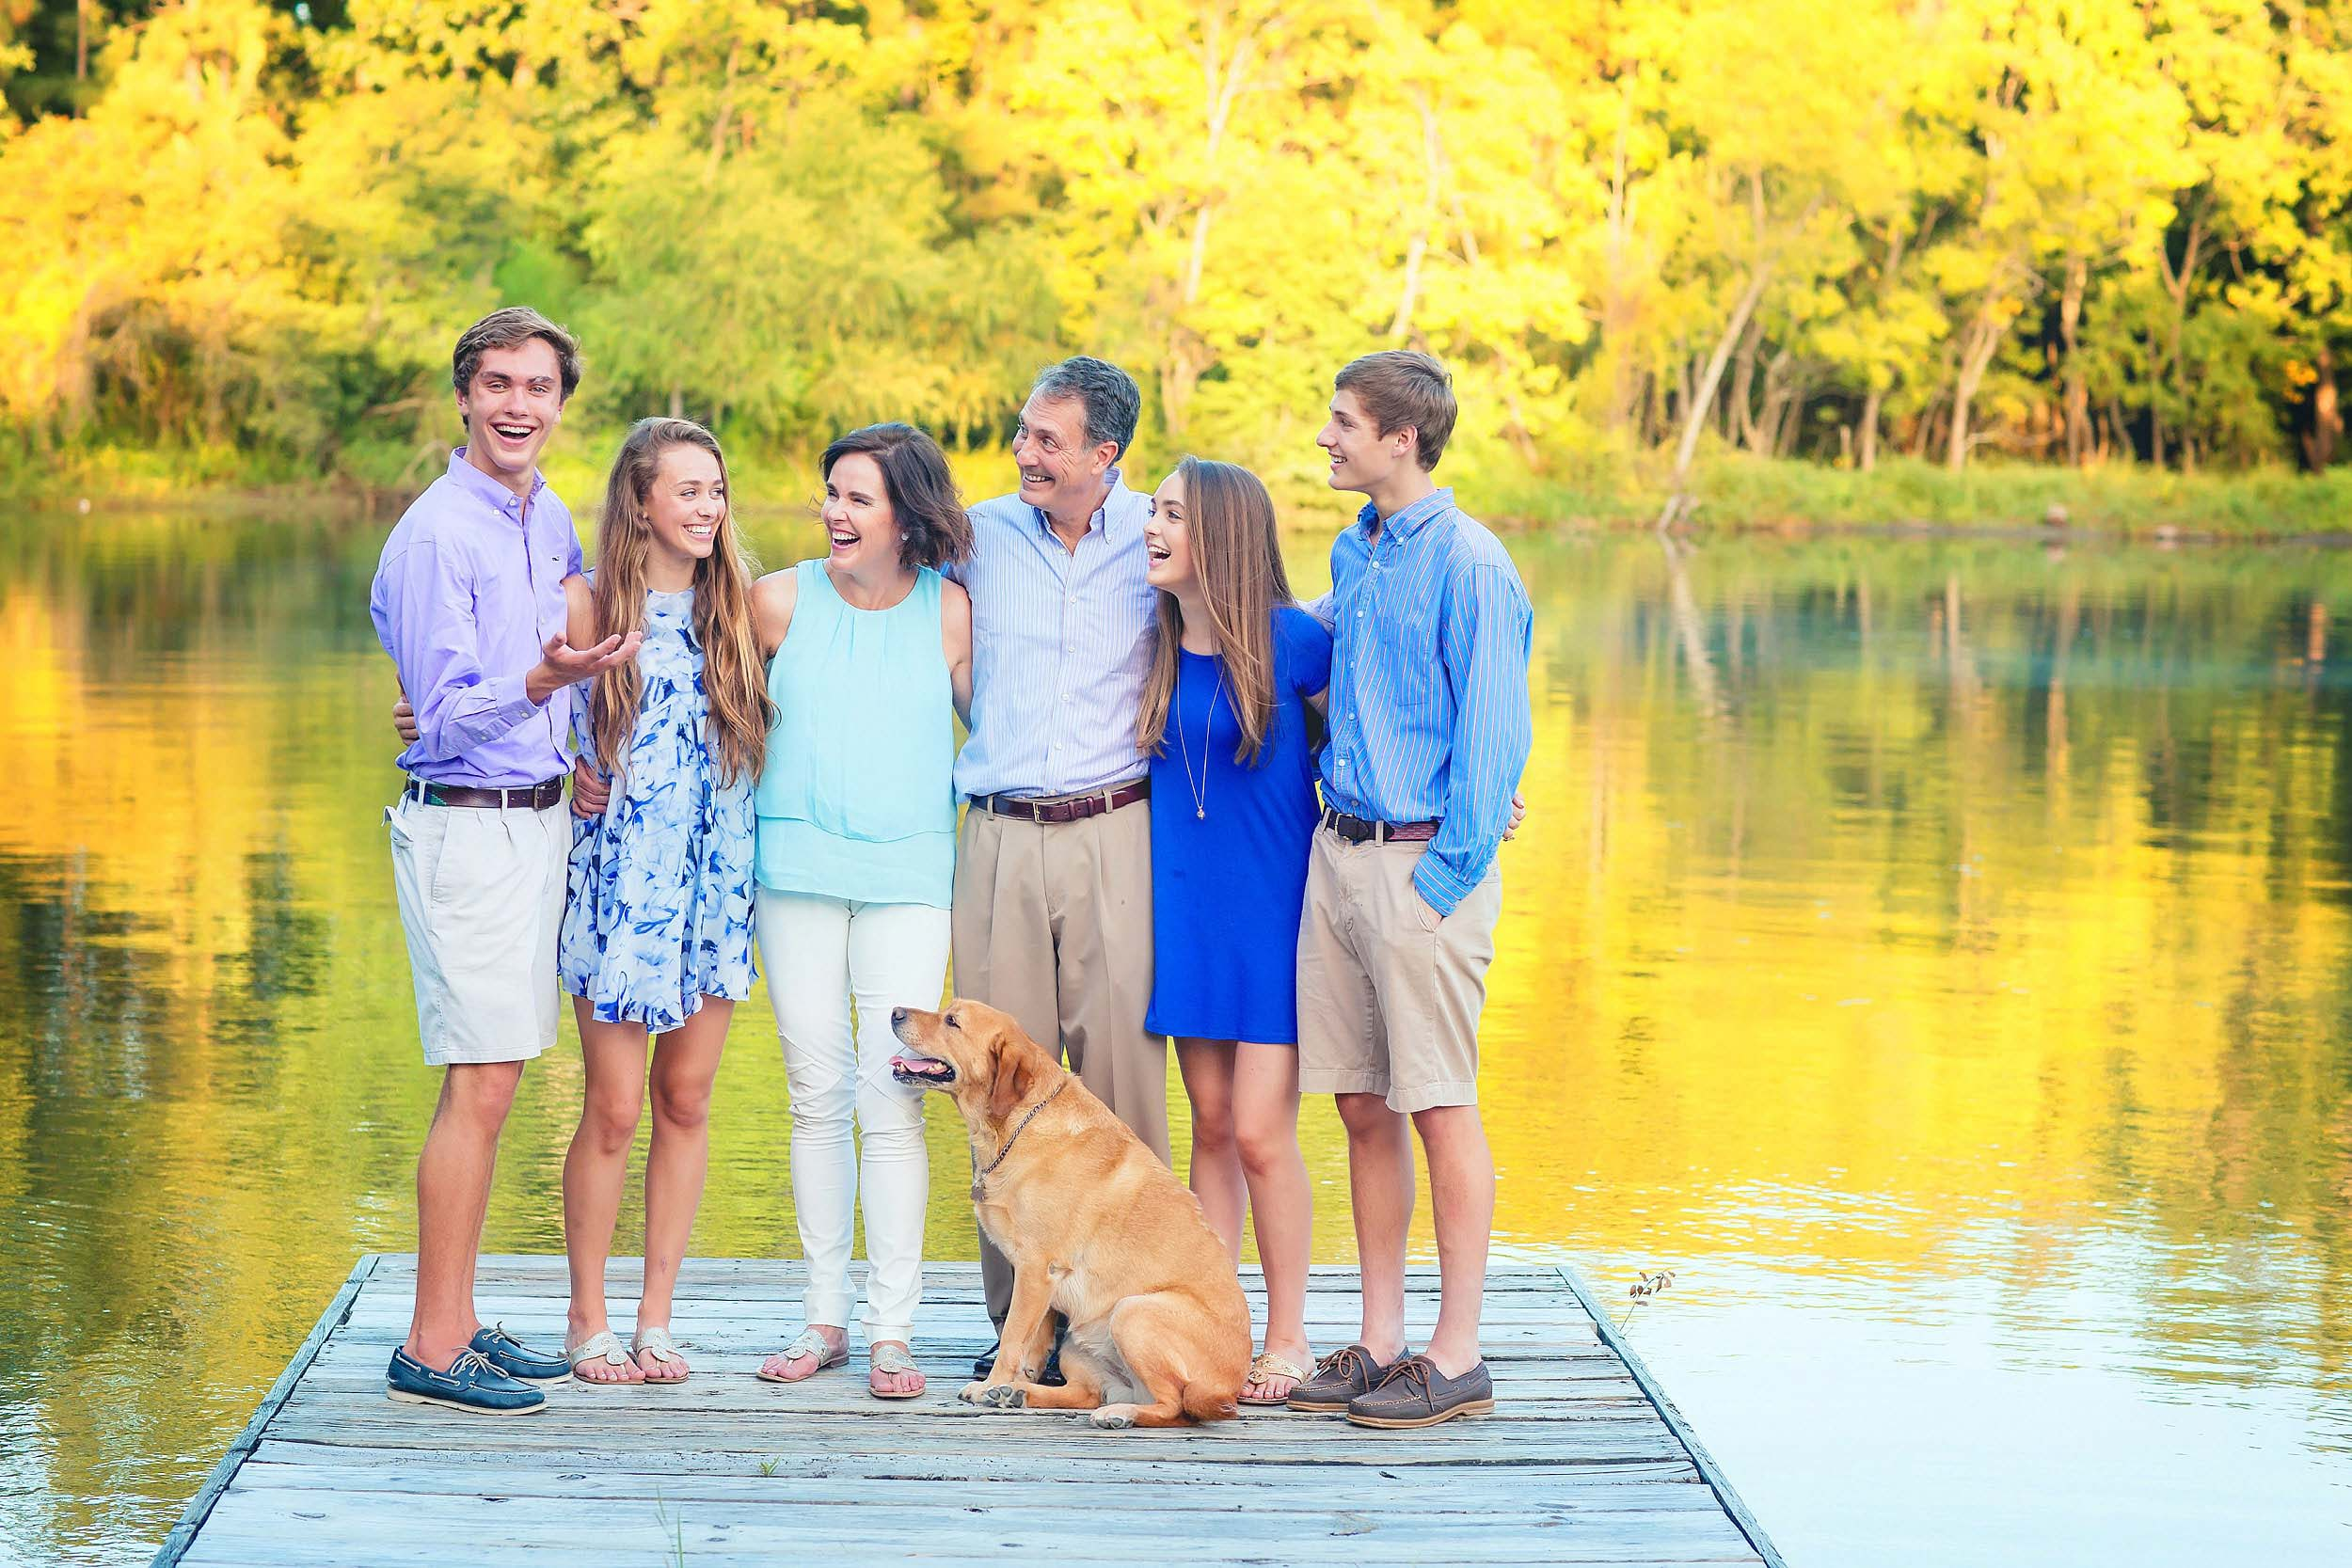 Fun family portrait with teenagers and dog in The Woodlands, Texas by spryART photography.